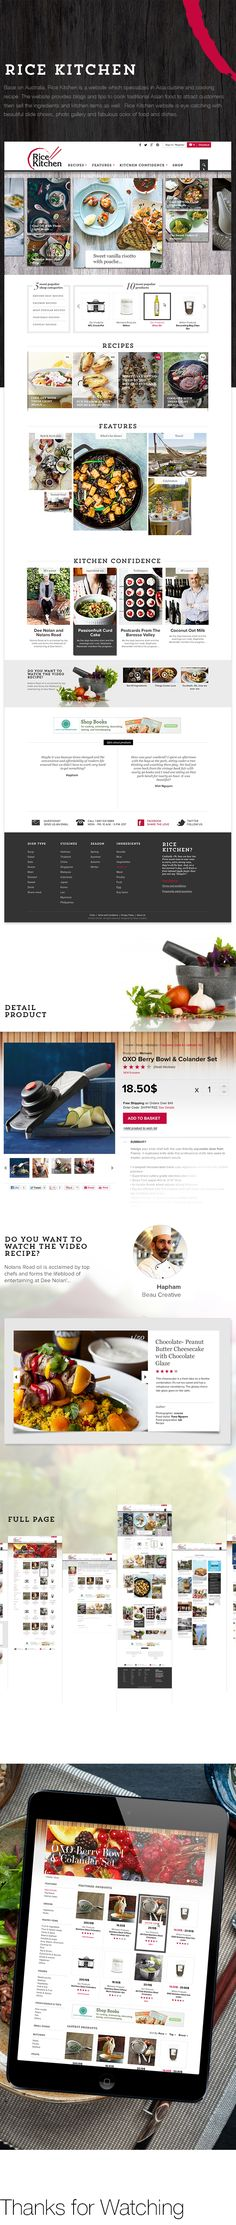 Base on Australia, Rice Kitchen is a website which specializes in Asia cuisine and cooking recipe. The website provides blogs and tips to cook traditional Asian food to attract customers then sell the ingredients and kitchen items as well. Rice Kitchen website is eye catching with beautiful slide shows, photo gallery and fabulous color of food and dishes. #cooking, #Food website, #Kitchen, #recipe, #Asian Food,